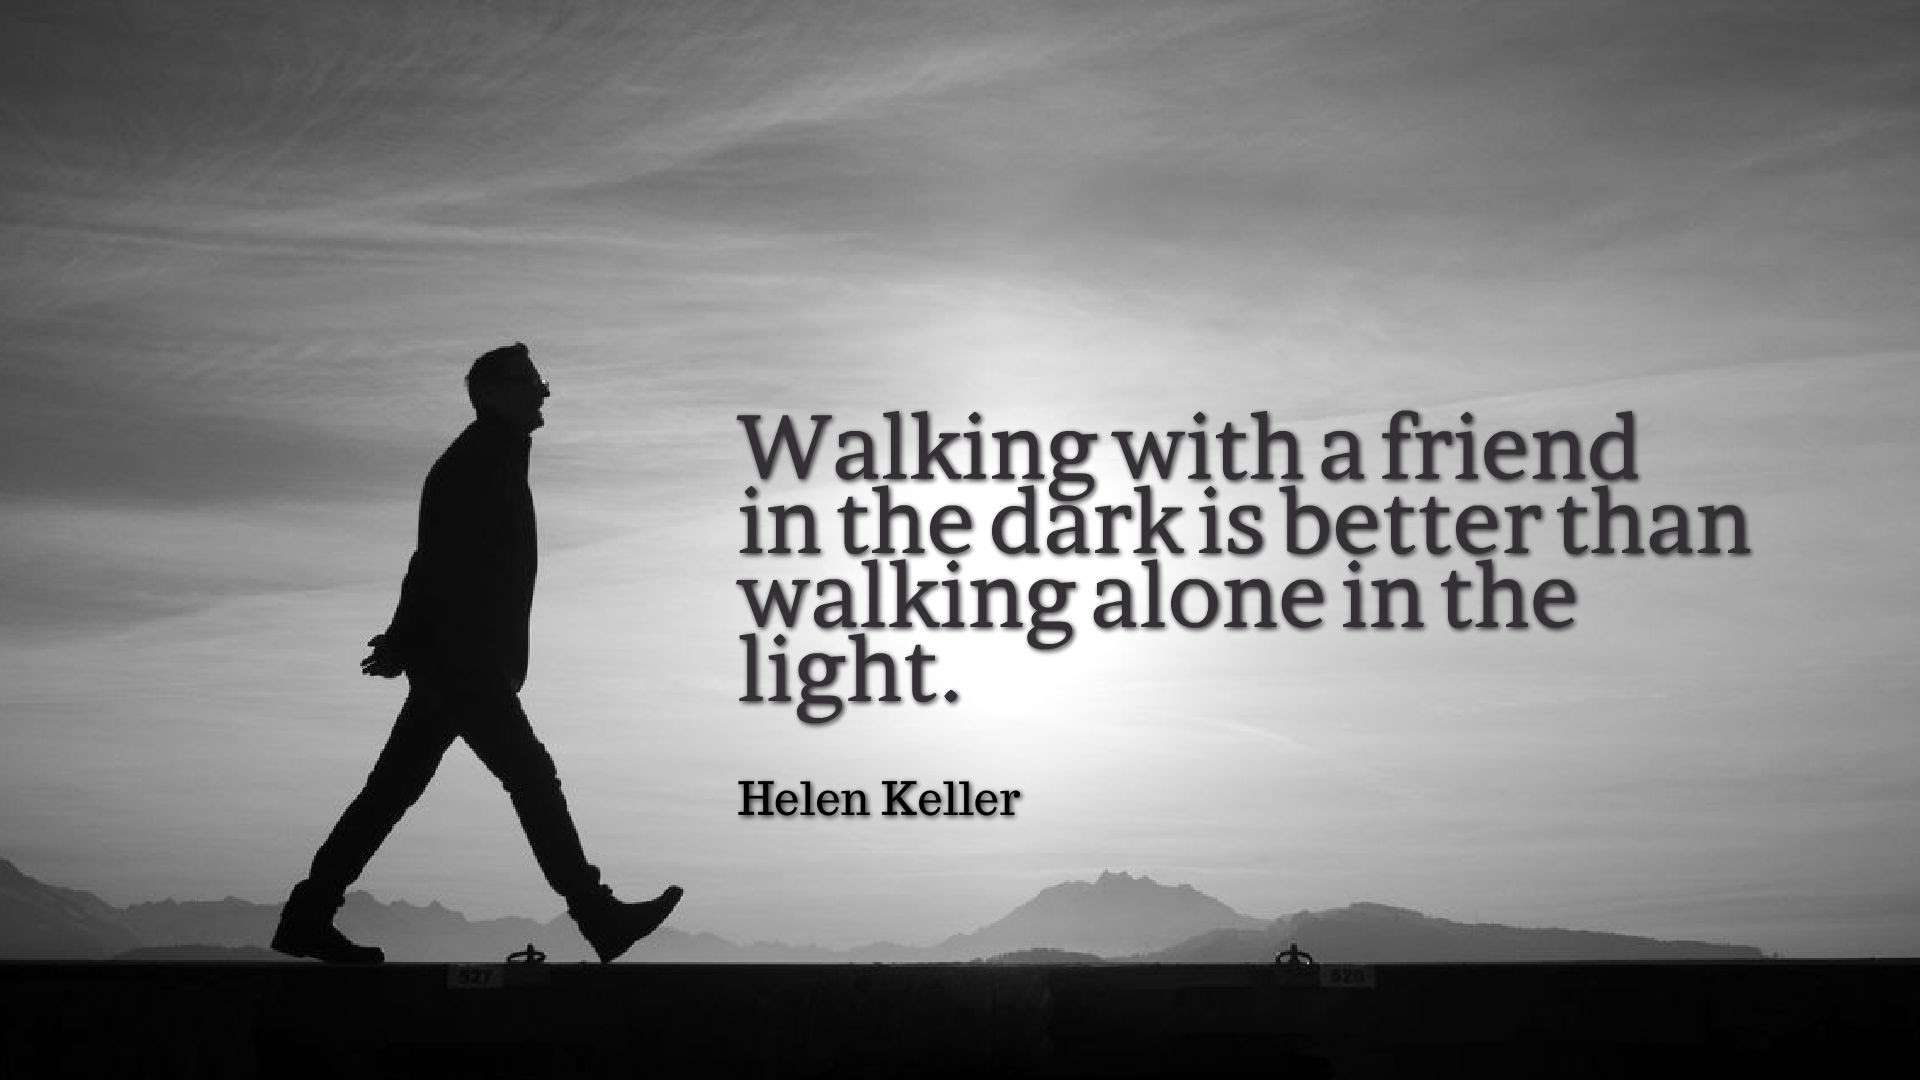 Alone Quotes HD Wallpapers 13037 - Baltana